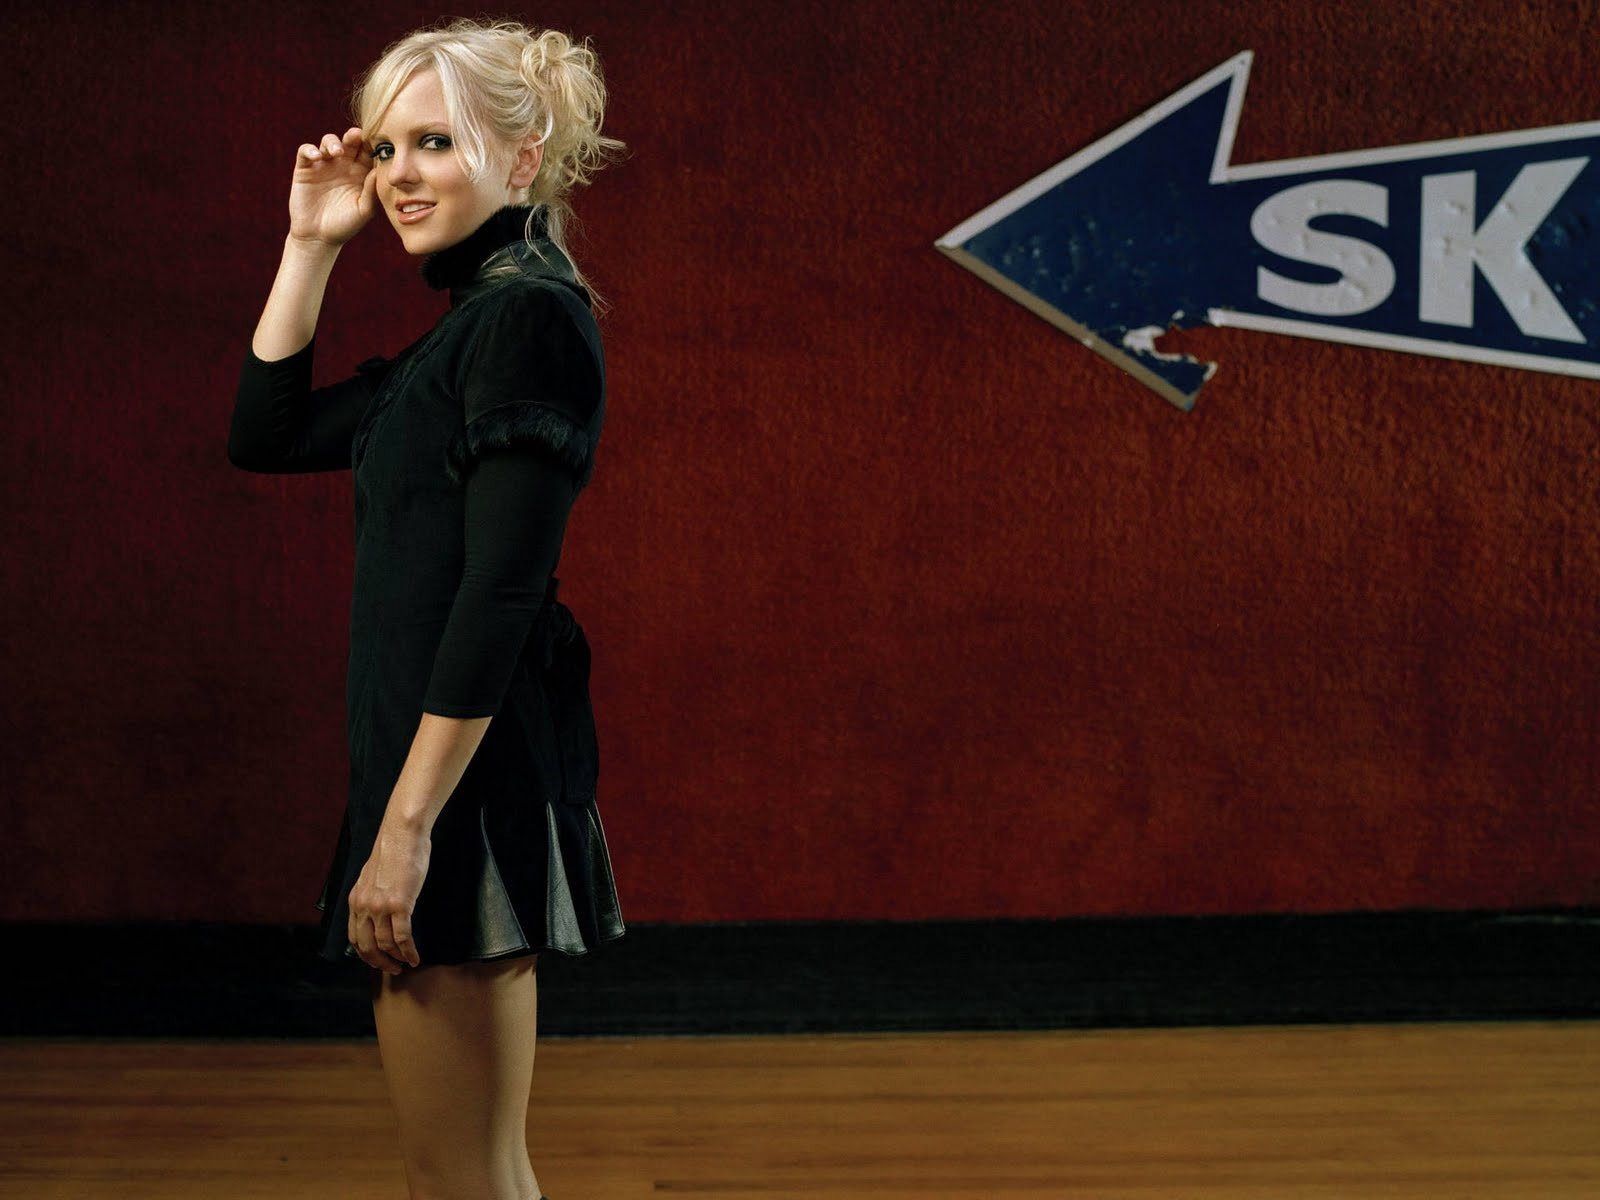 Anna Faris-Young Babe Hollywood Wallpaper  Taste Wallpapers-6688